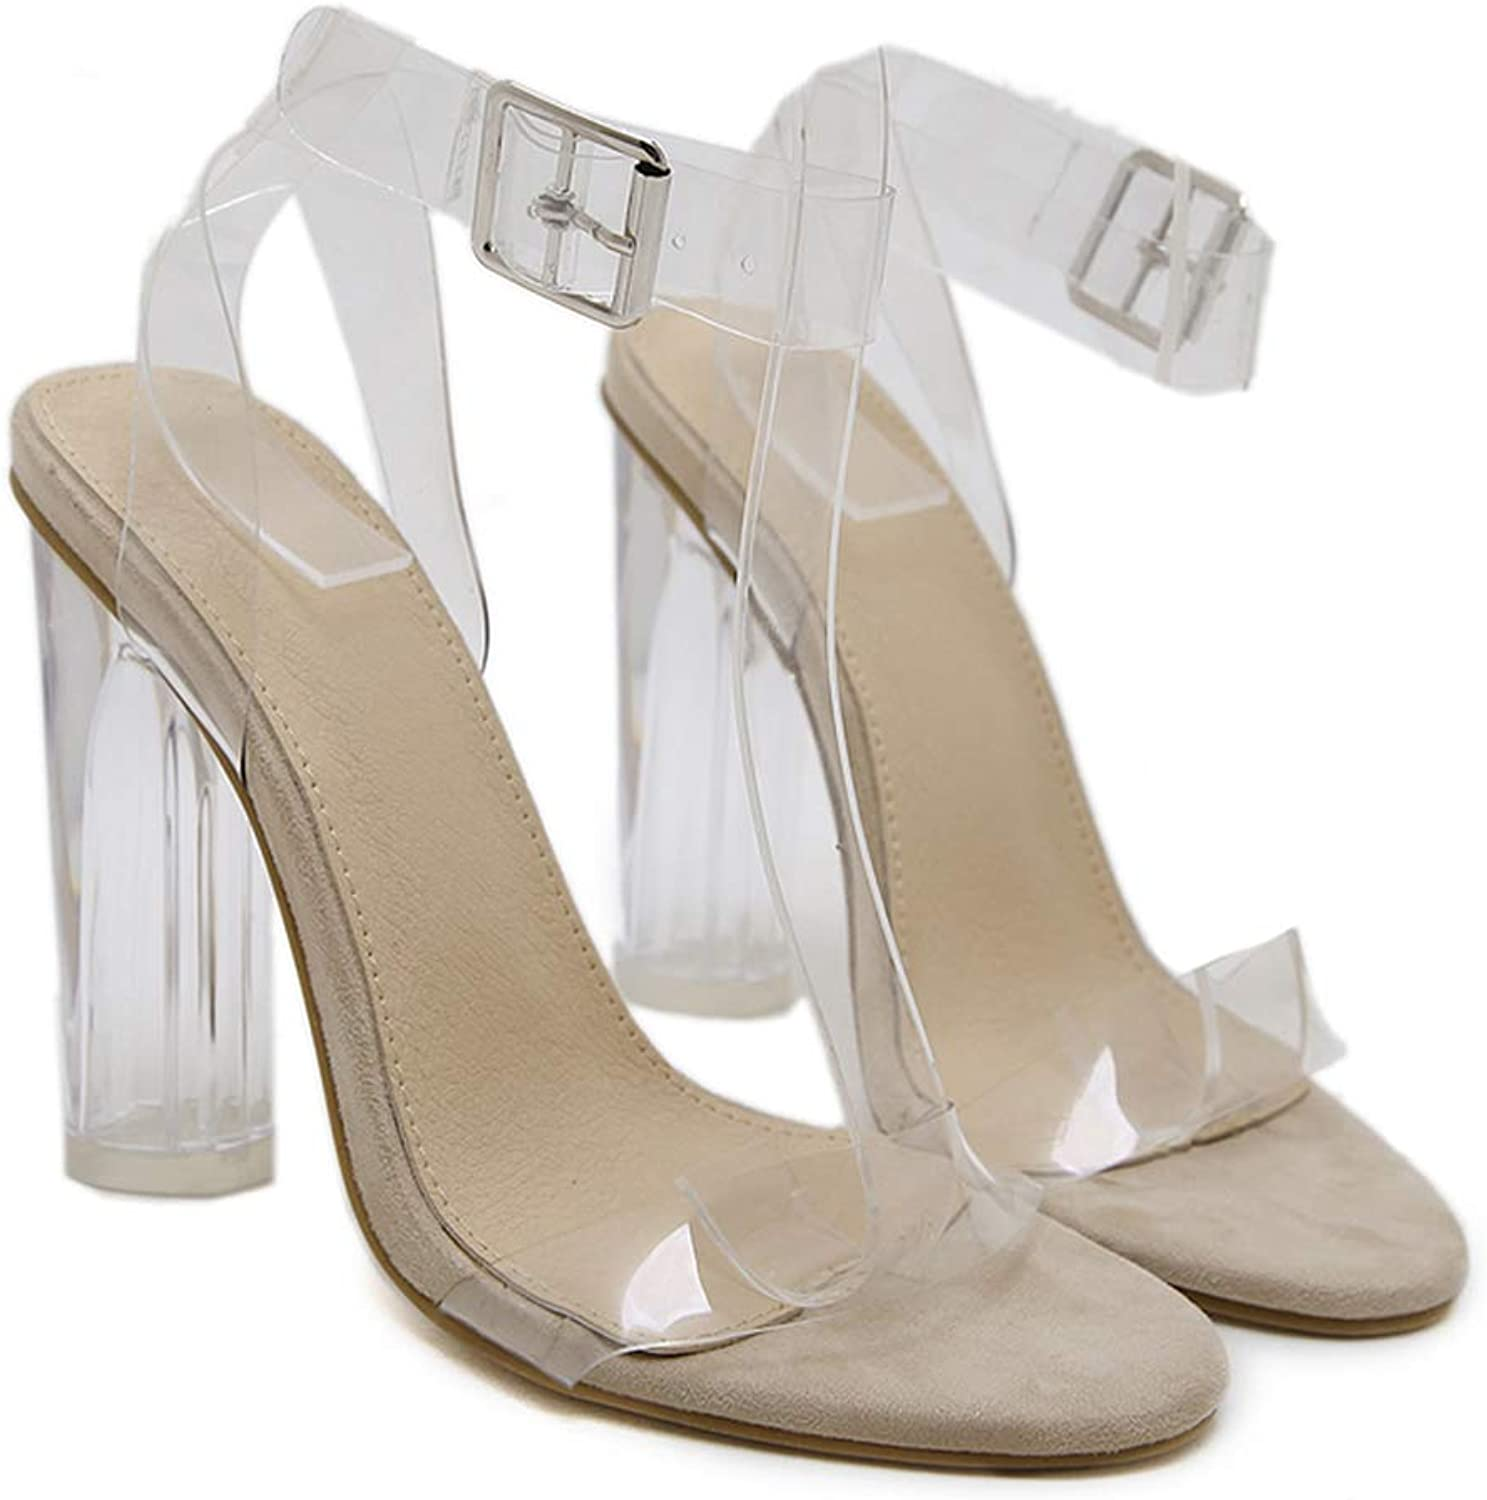 LAIGEDANZI Transparent Heels shoes Woman Summer Clear Heels Women Sandals Ankle Strap High Heels shoes